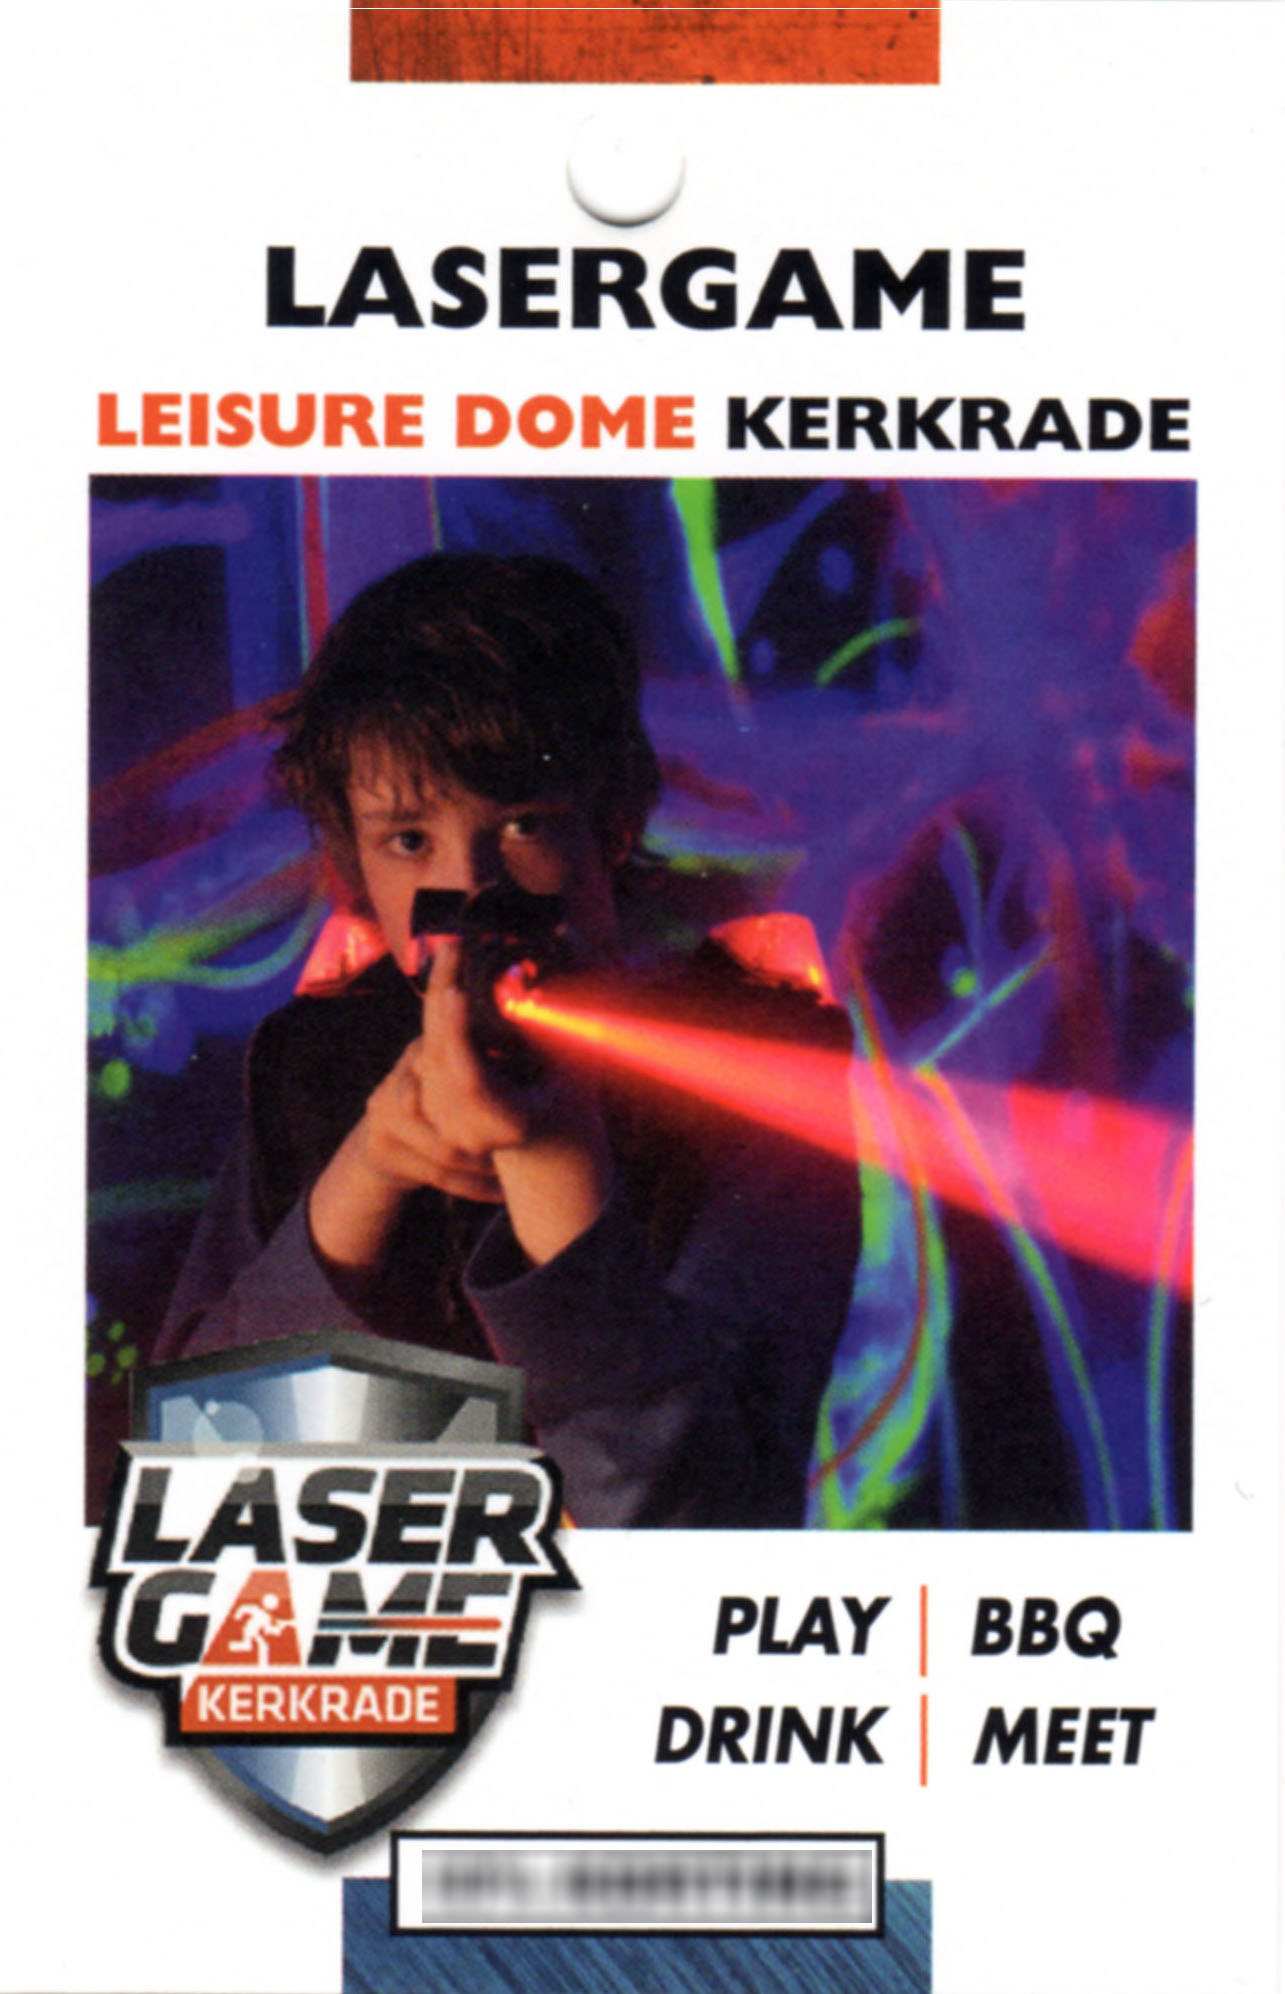 Lasergame Leisure Dome Kerkrade